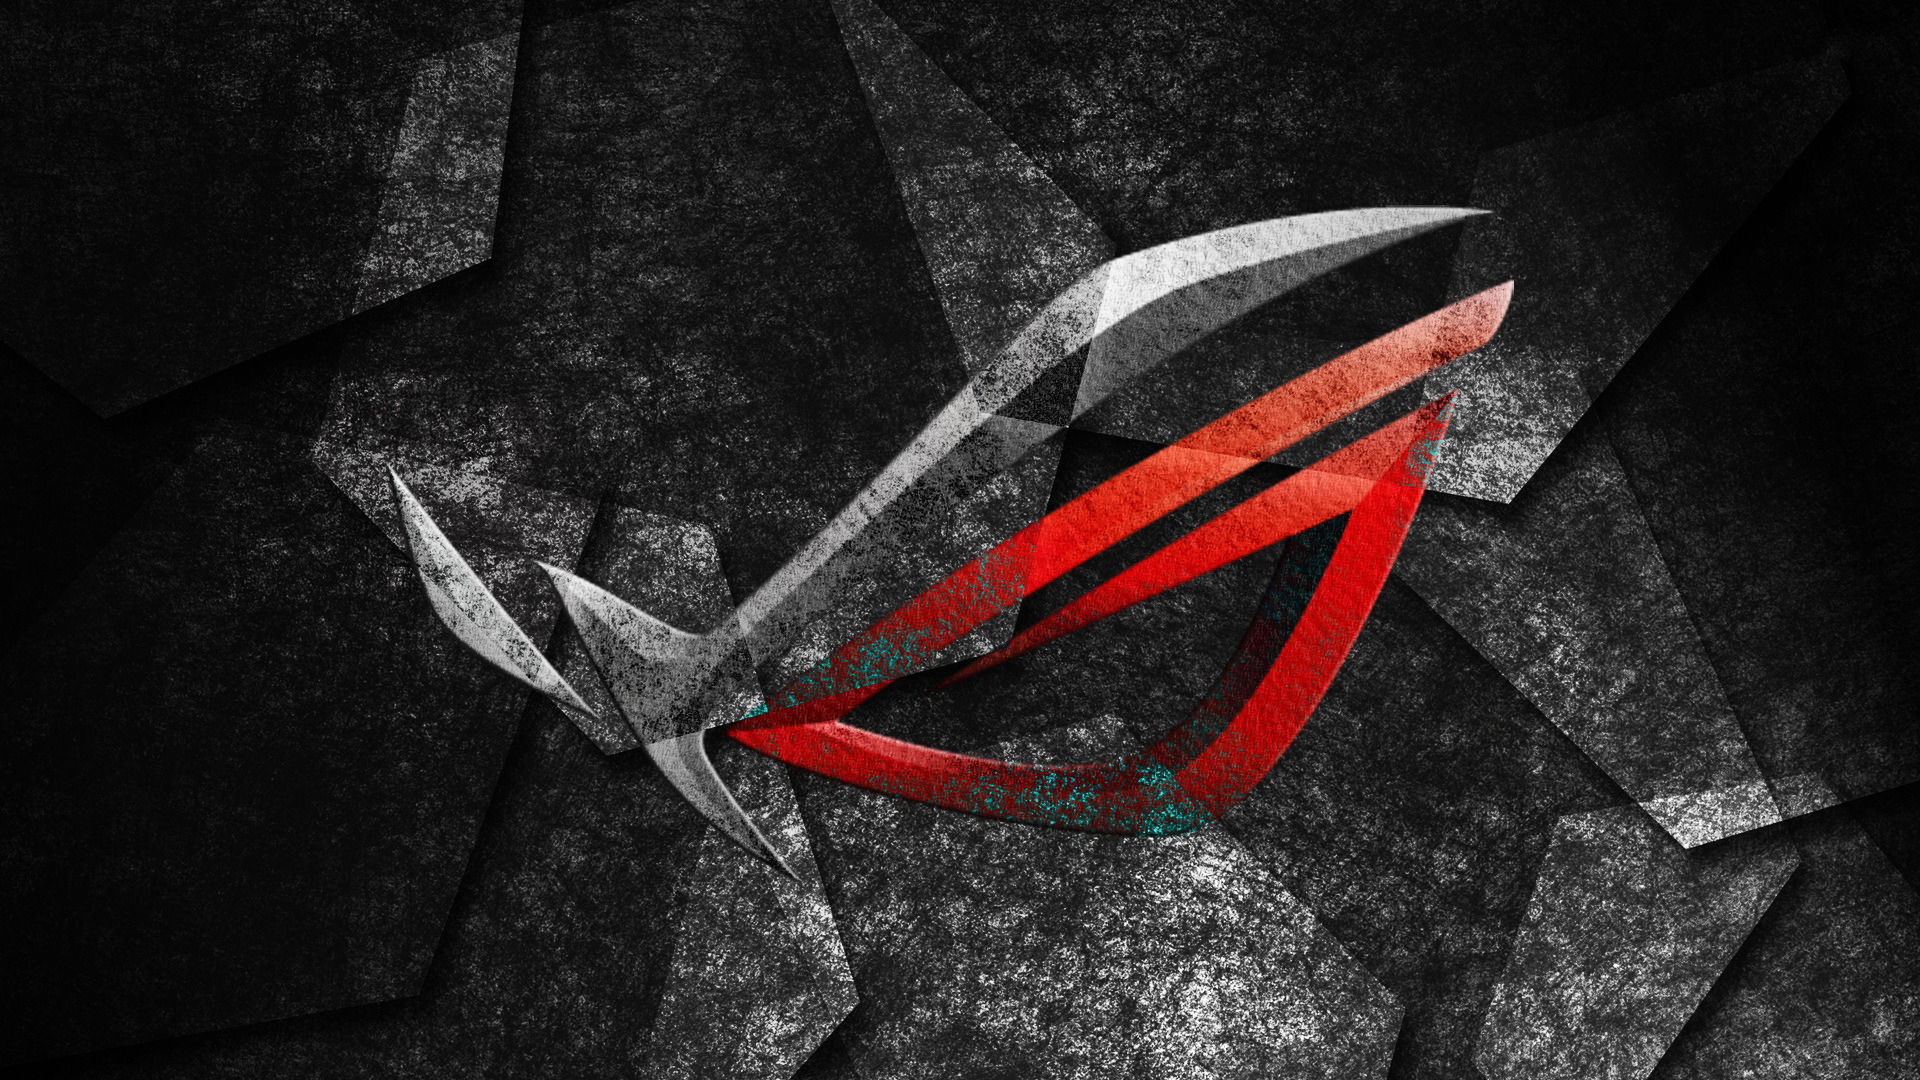 Asus Republic of Gamers 06 Wallpaper HD 1920x1080